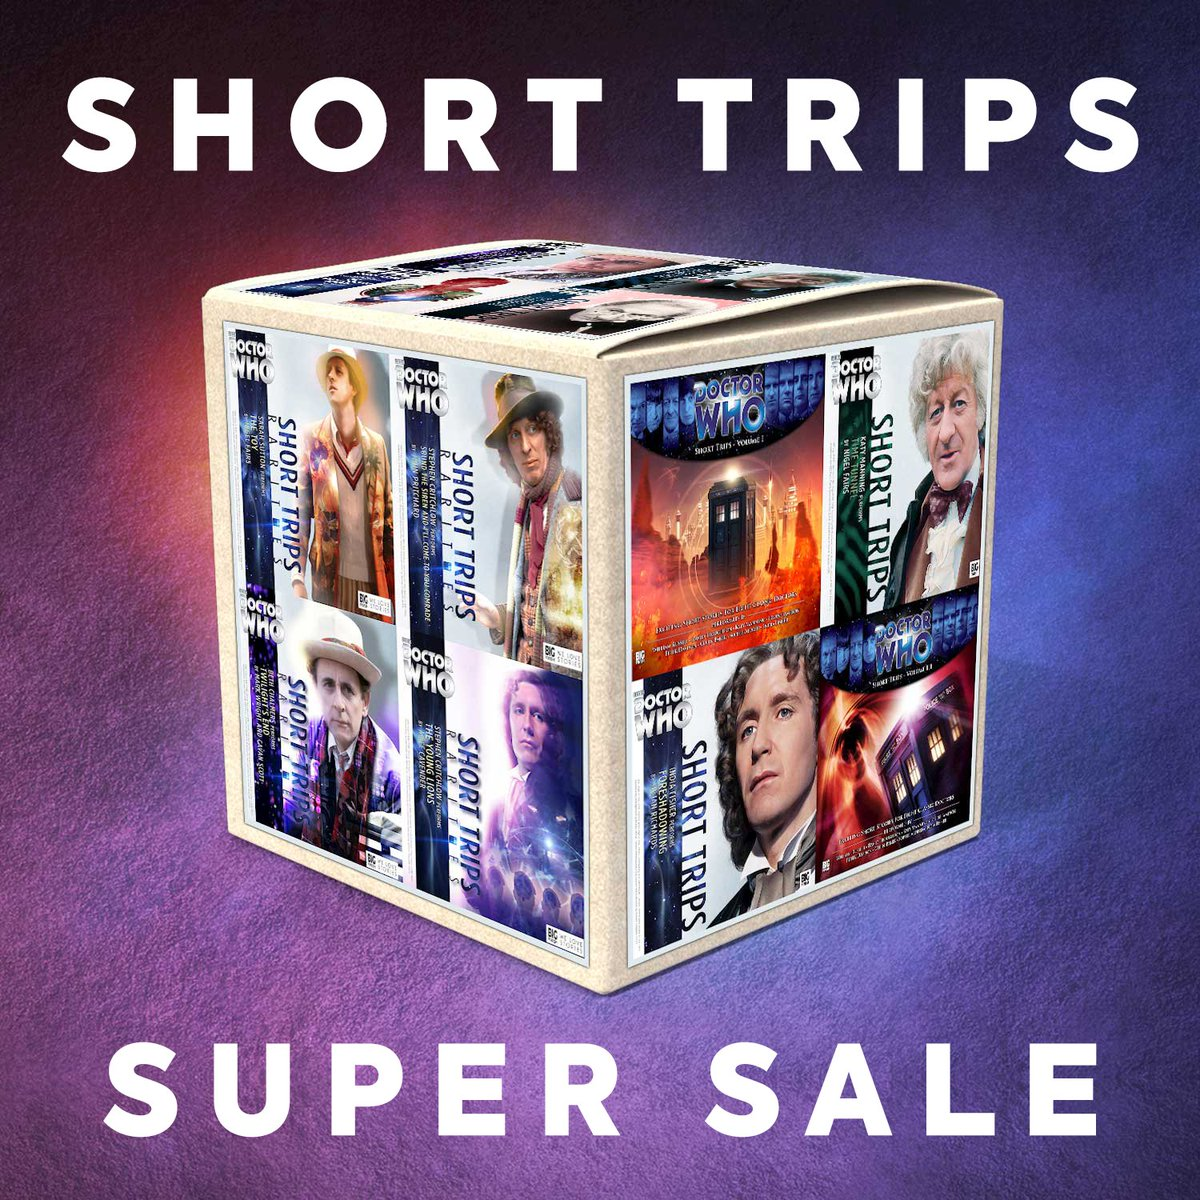 ENDS TOMORROW! Take a Short Trip for up to 50% OFF here: https://t.co/hrkzFUfQfA (Ends 23:59 UK time 01 October) #DoctorWho https://t.co/KrMb9hejL5